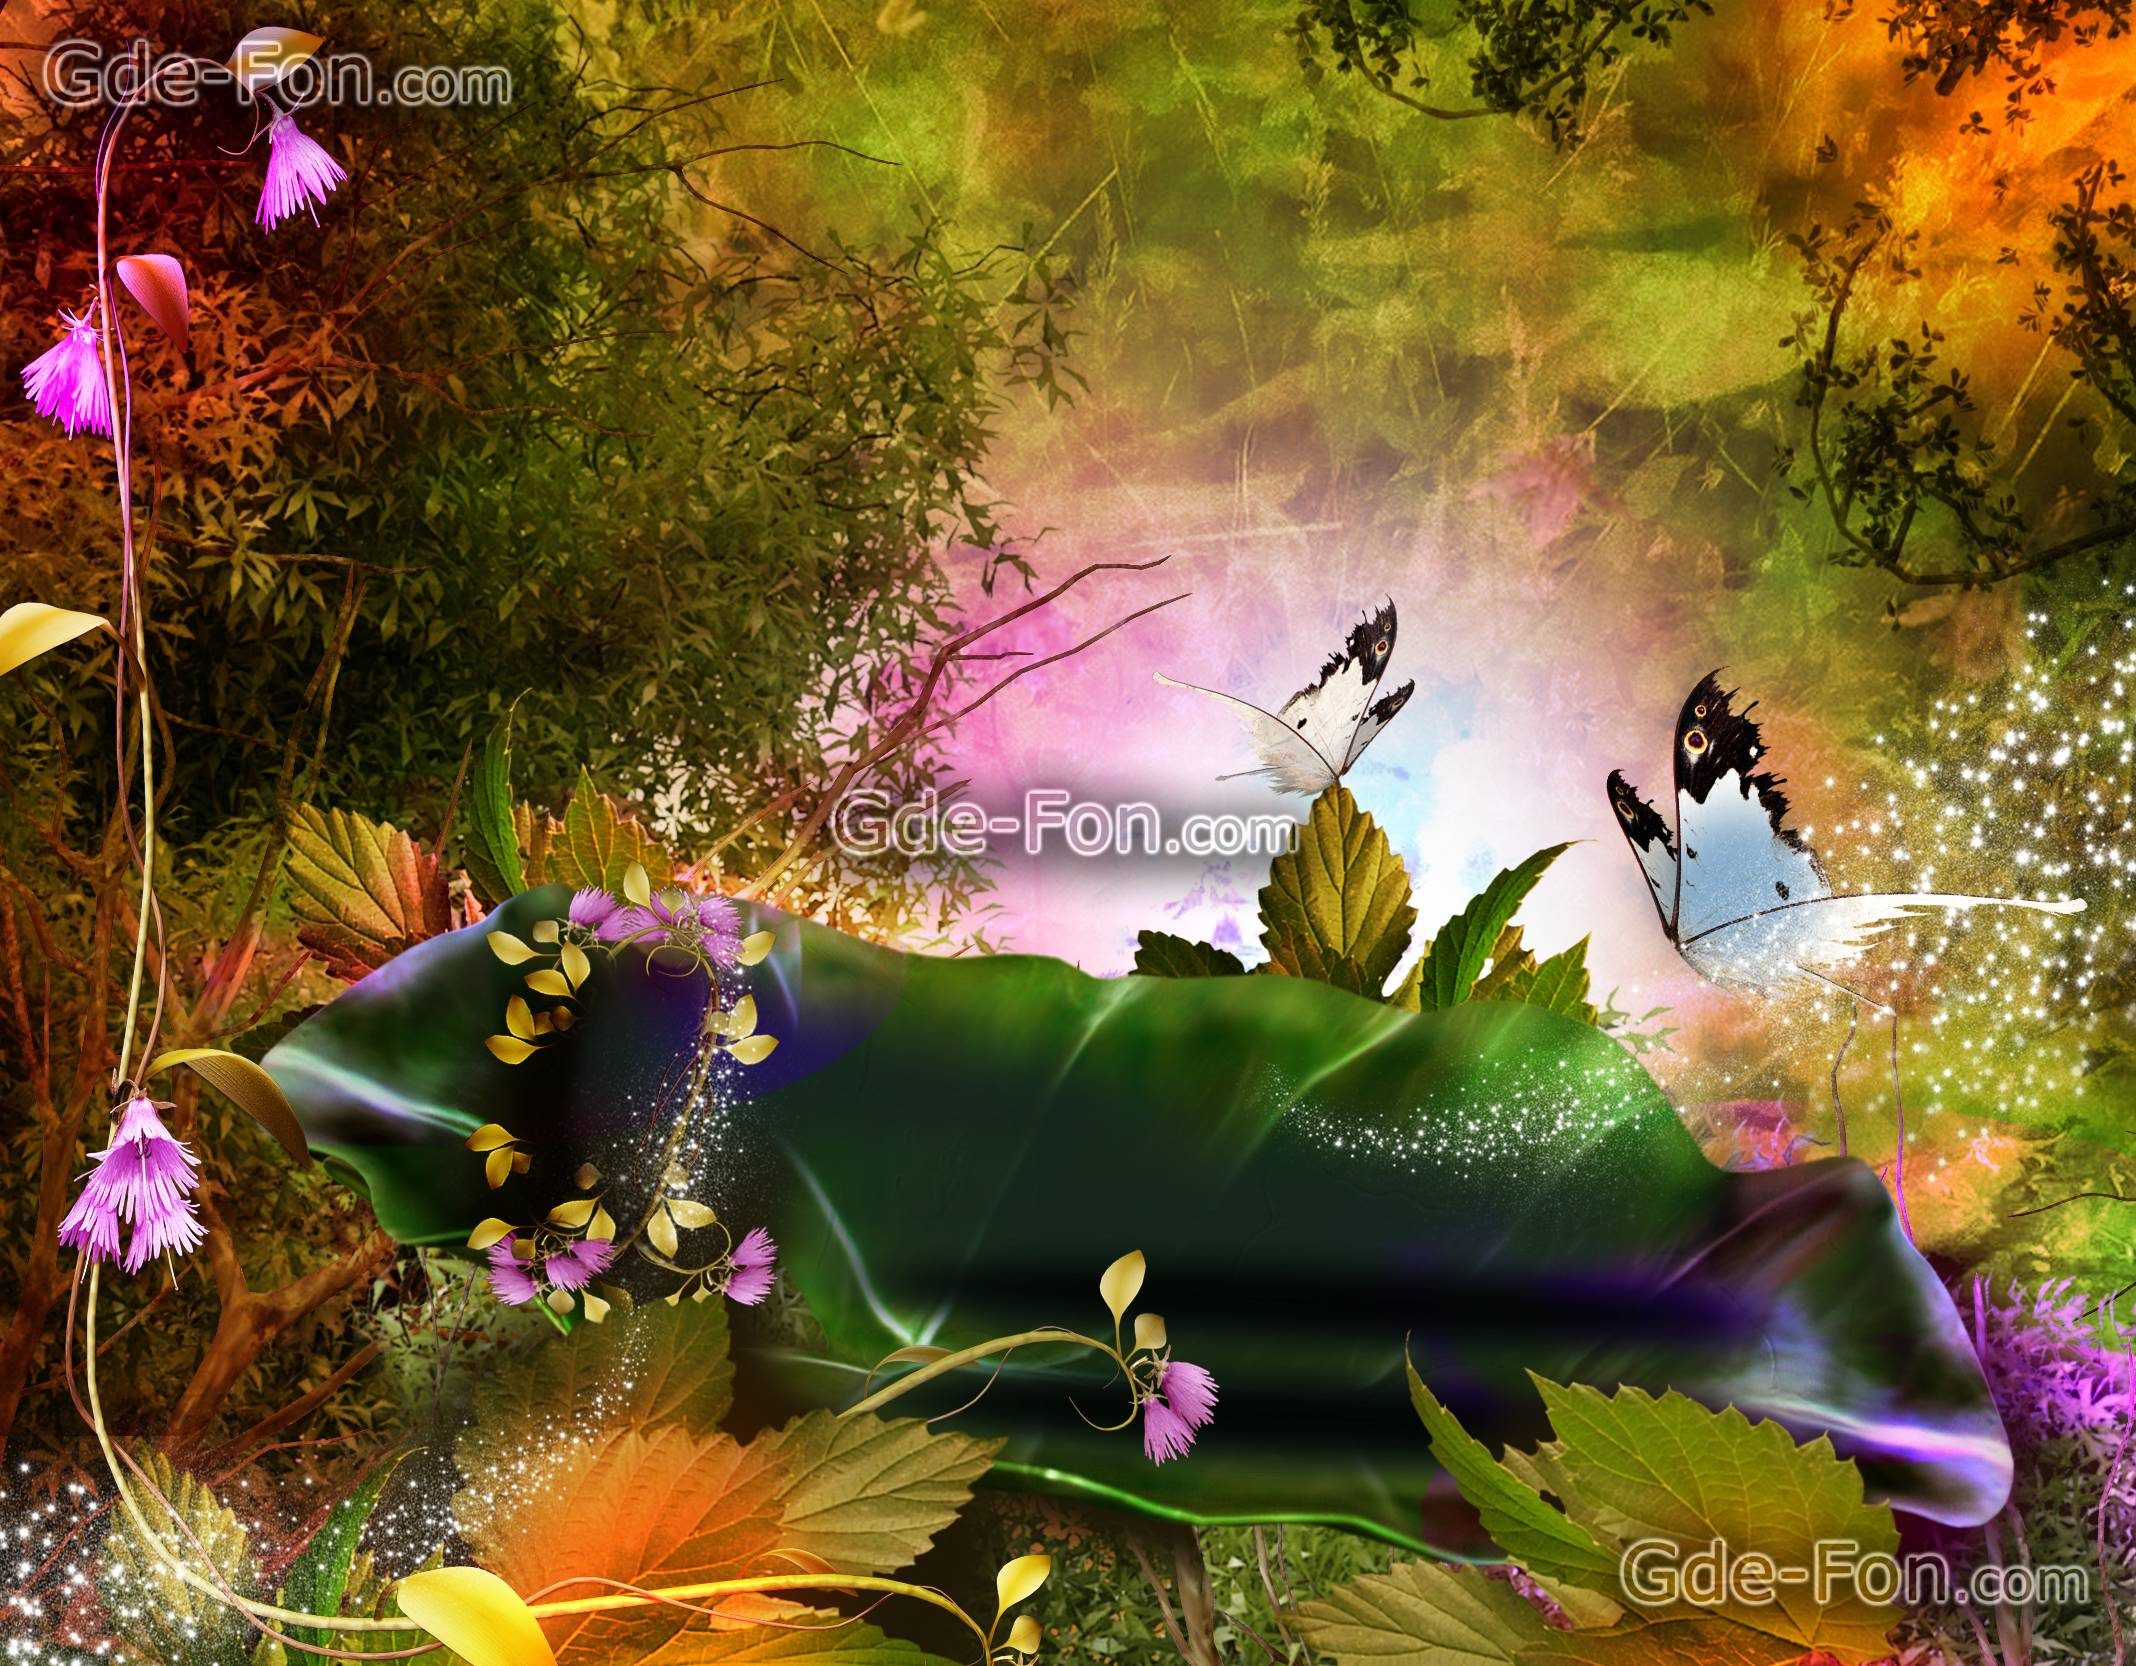 download wallpaper 3d nature phantasmagoria free desktop